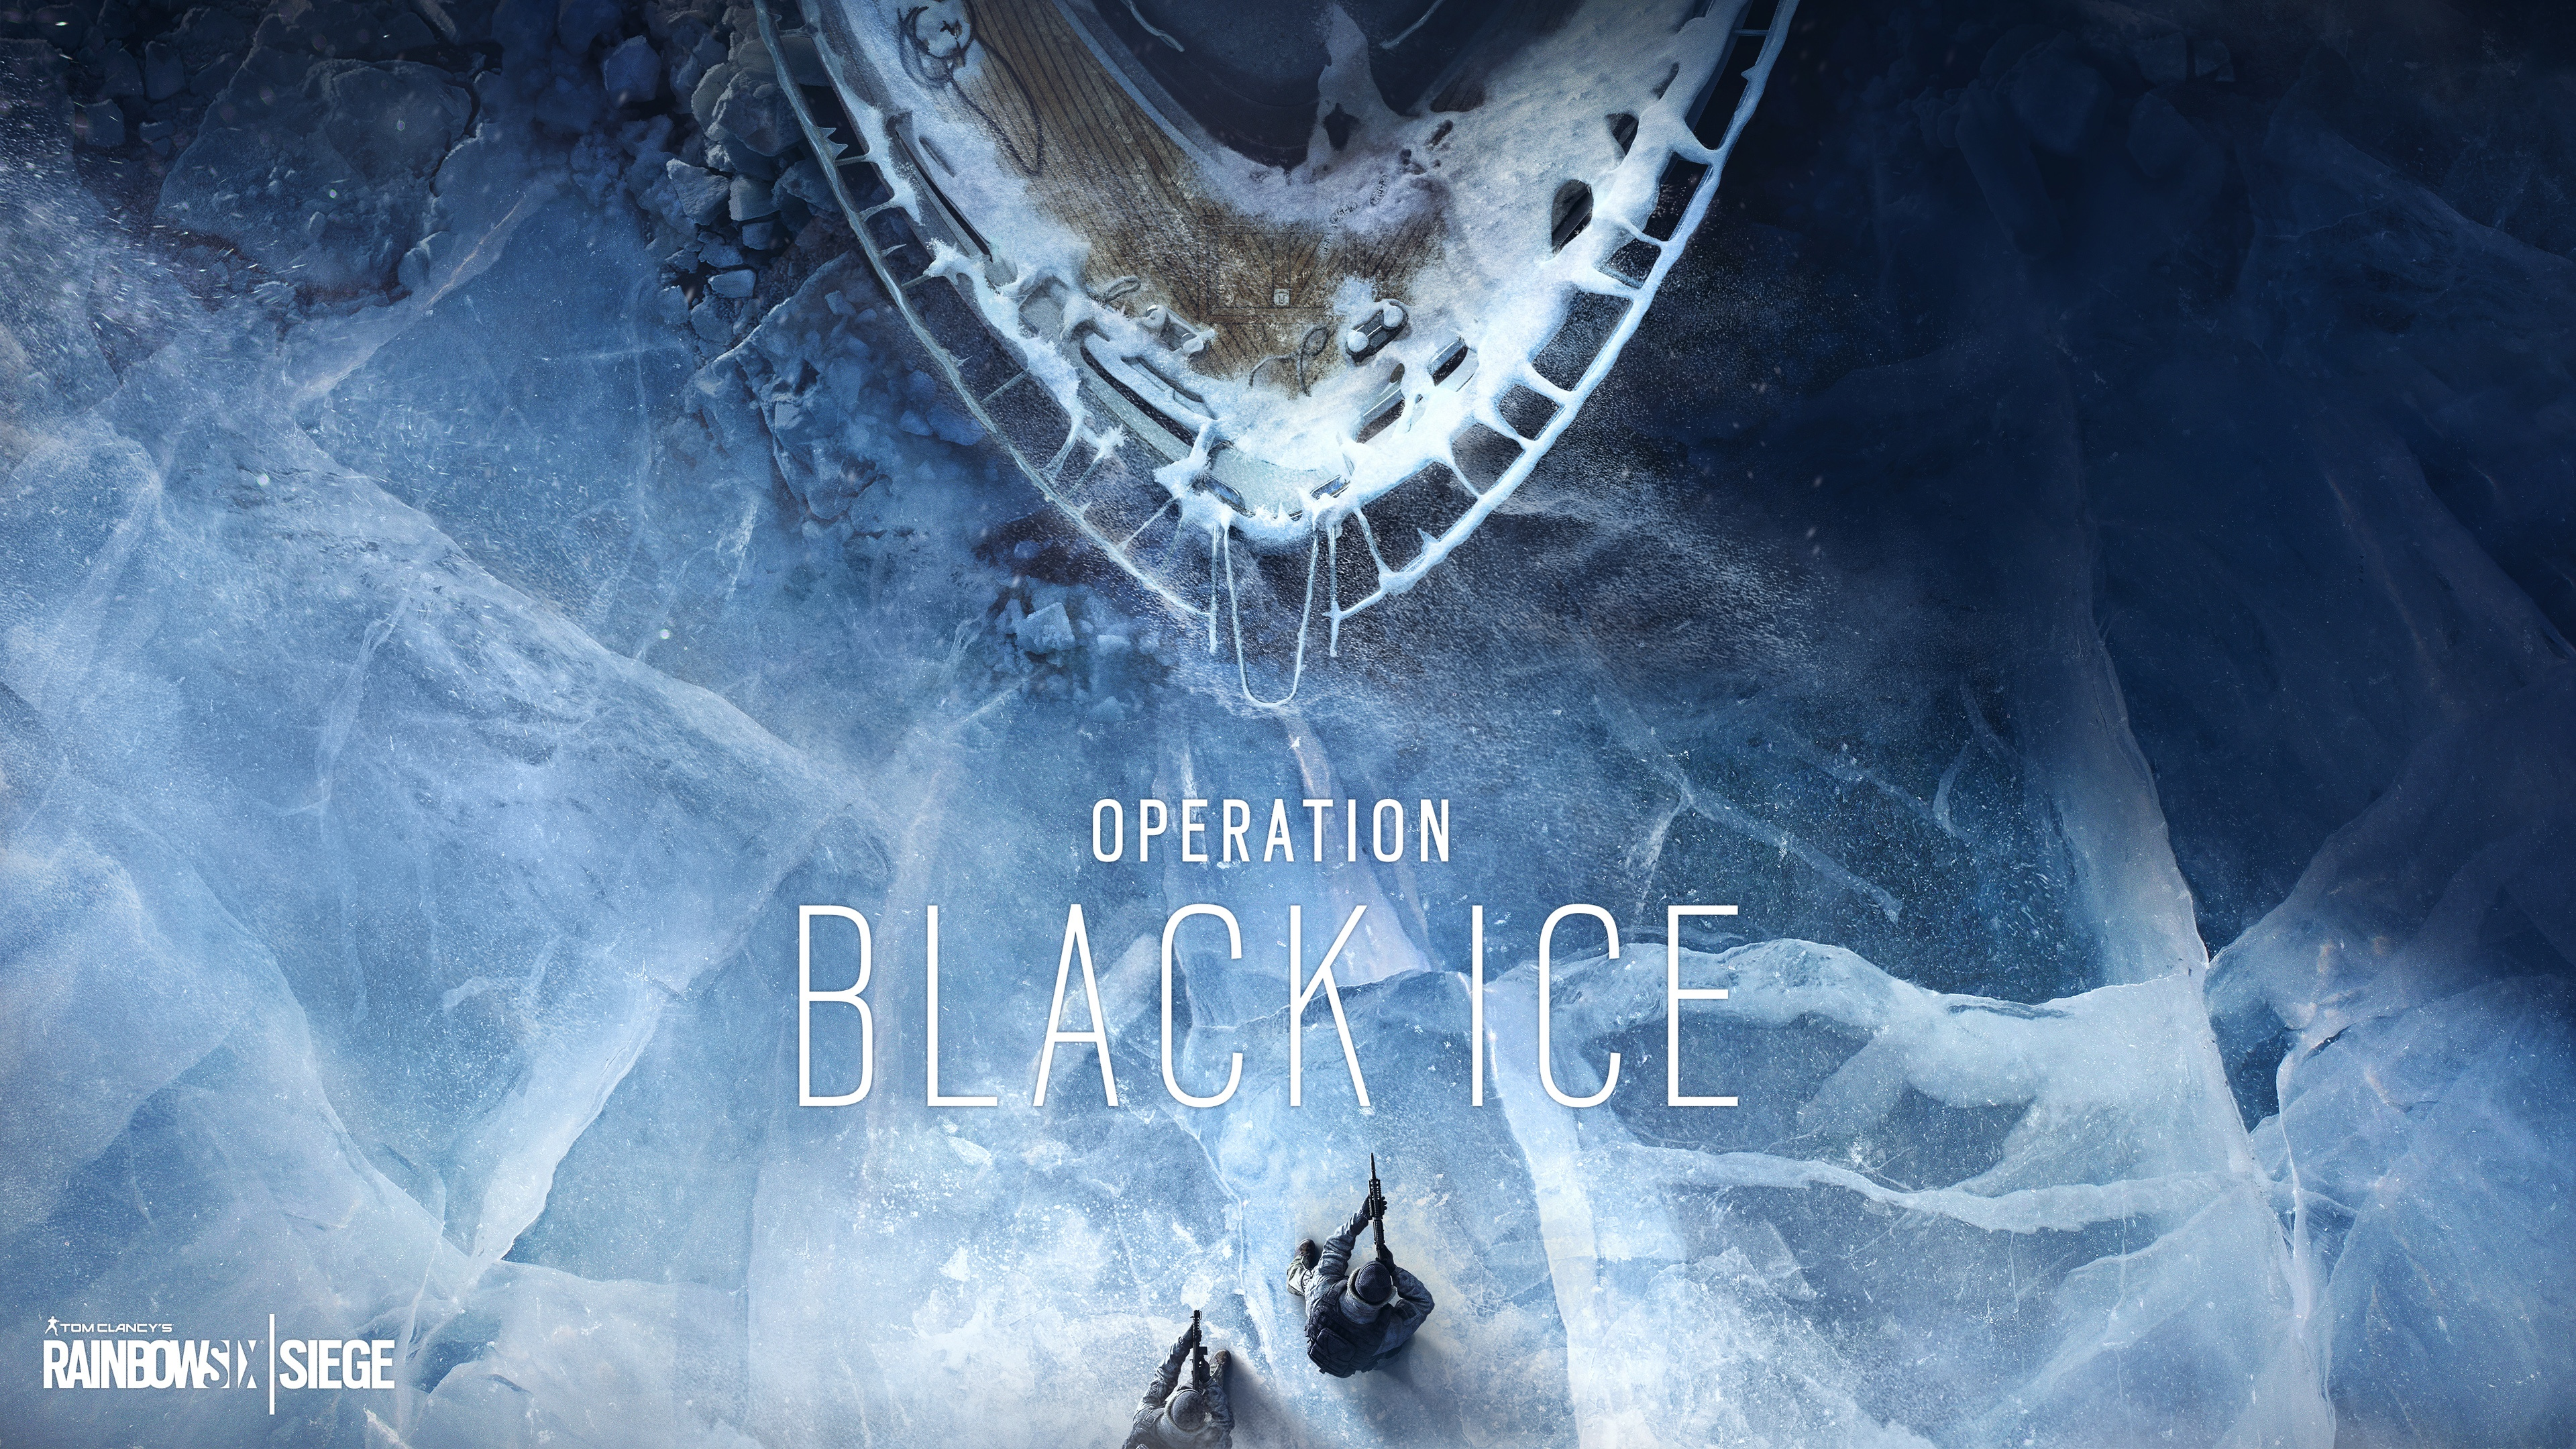 Rainbow Six Siege Operation Black Ice Wallpapers in jpg format for 3840x2160